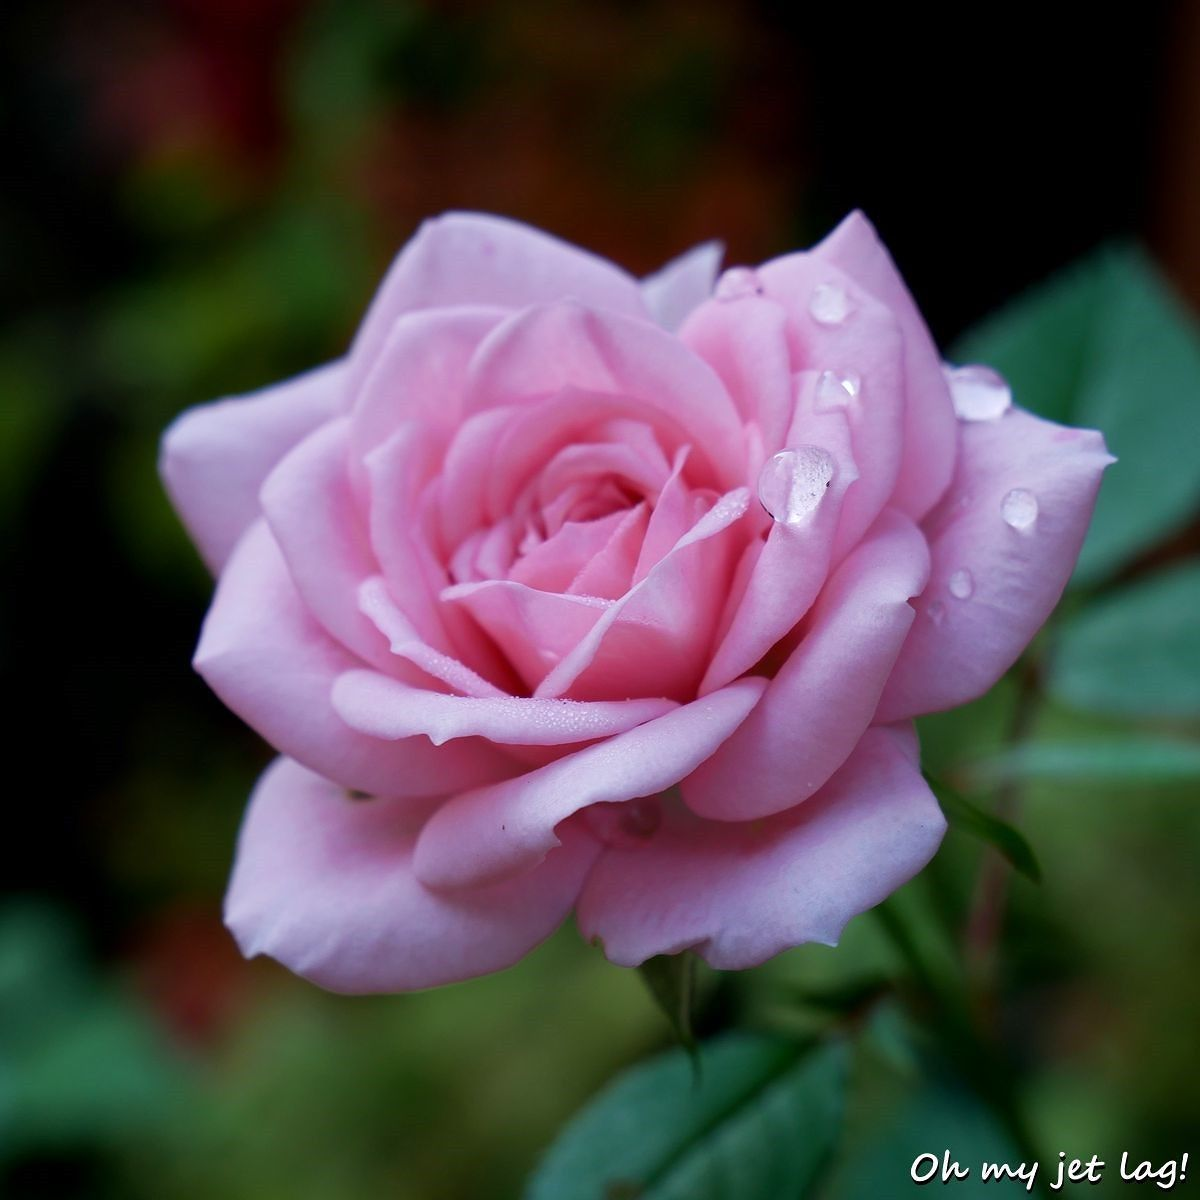 Juste a rose in a beautiful morning rose flower flowers nature juste a rose in a beautiful morning rose flower flowers nature wild fleur fleurs pink color japan rose beautiful wow izmirmasajfo